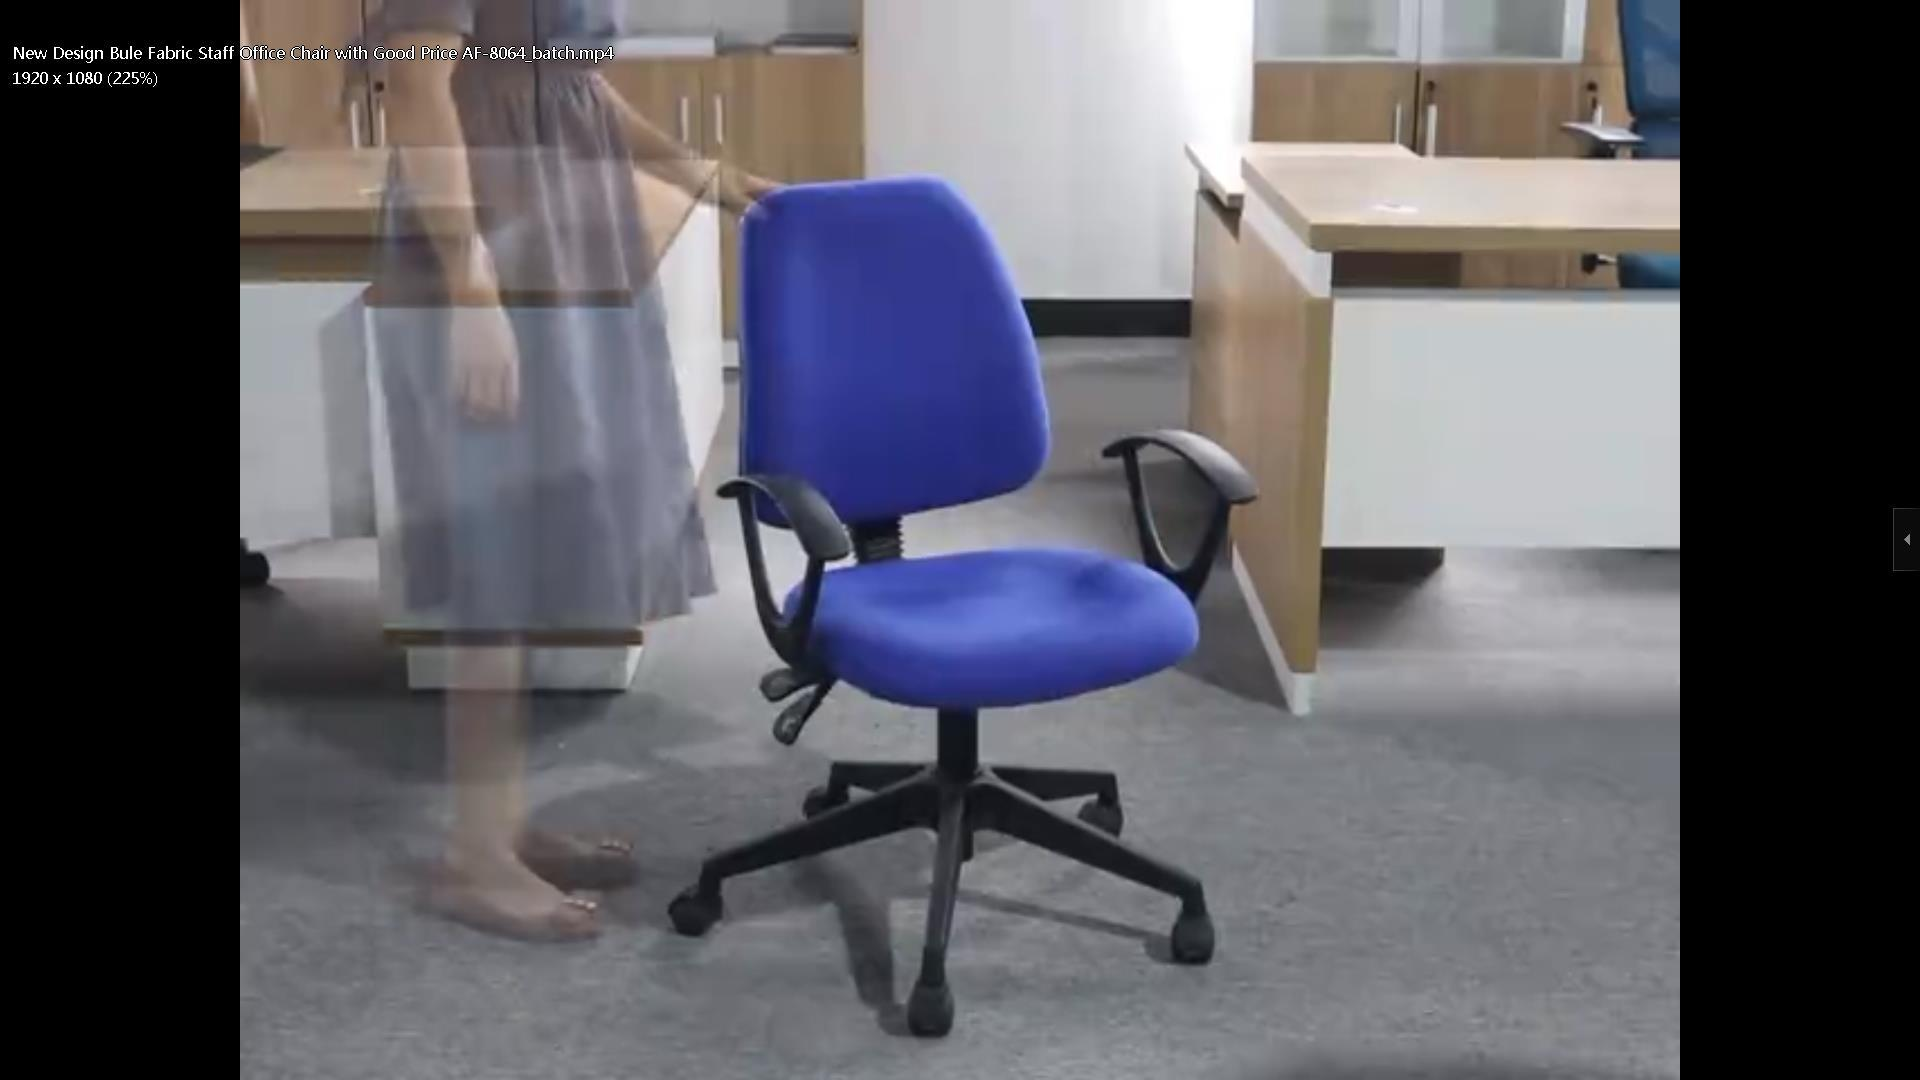 New Design Bule Fabric Staff Office Chair with Good Price AF-8064